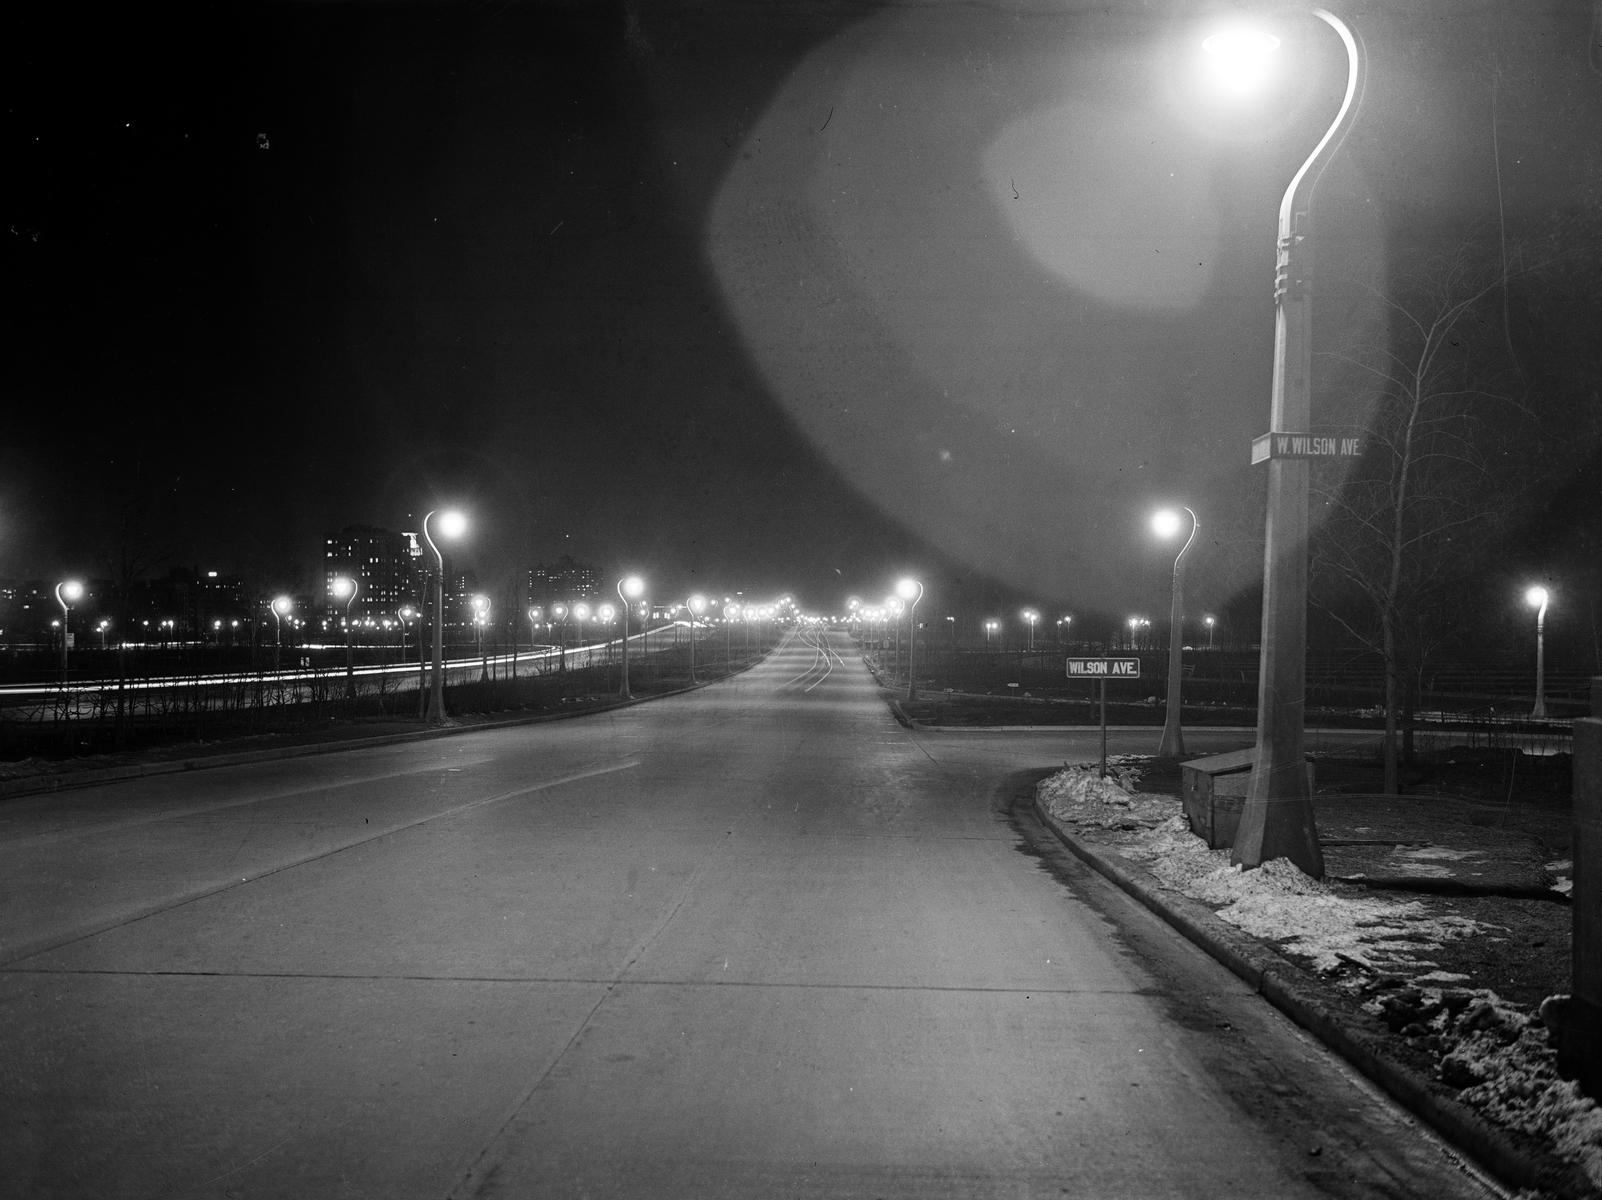 Traffic Intersection at Lake Shore Drive and Wilson Ave (image 02)